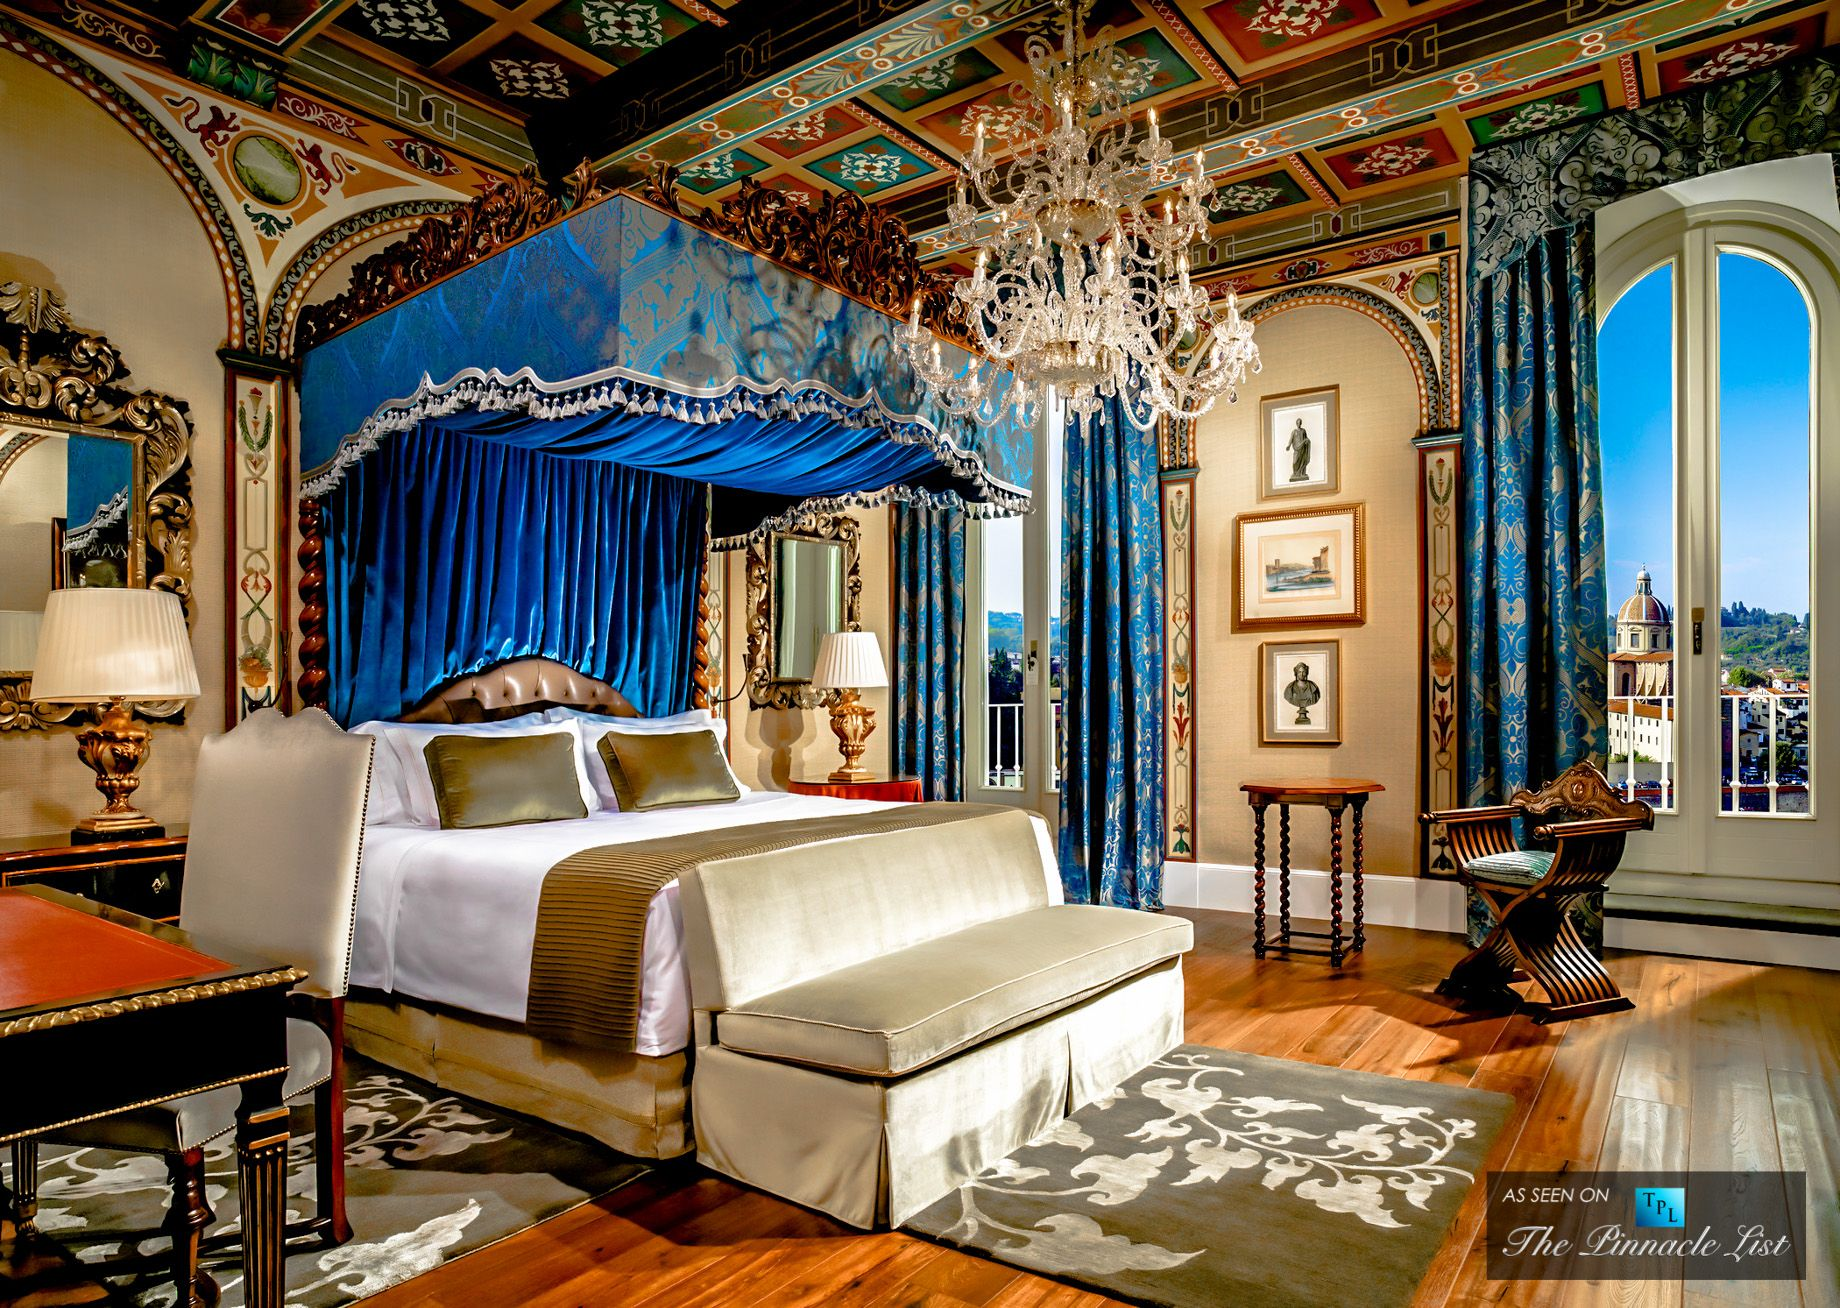 St regis luxury hotel florence italy royal suite gioconda master bedroom classic Pics of master bedroom suites